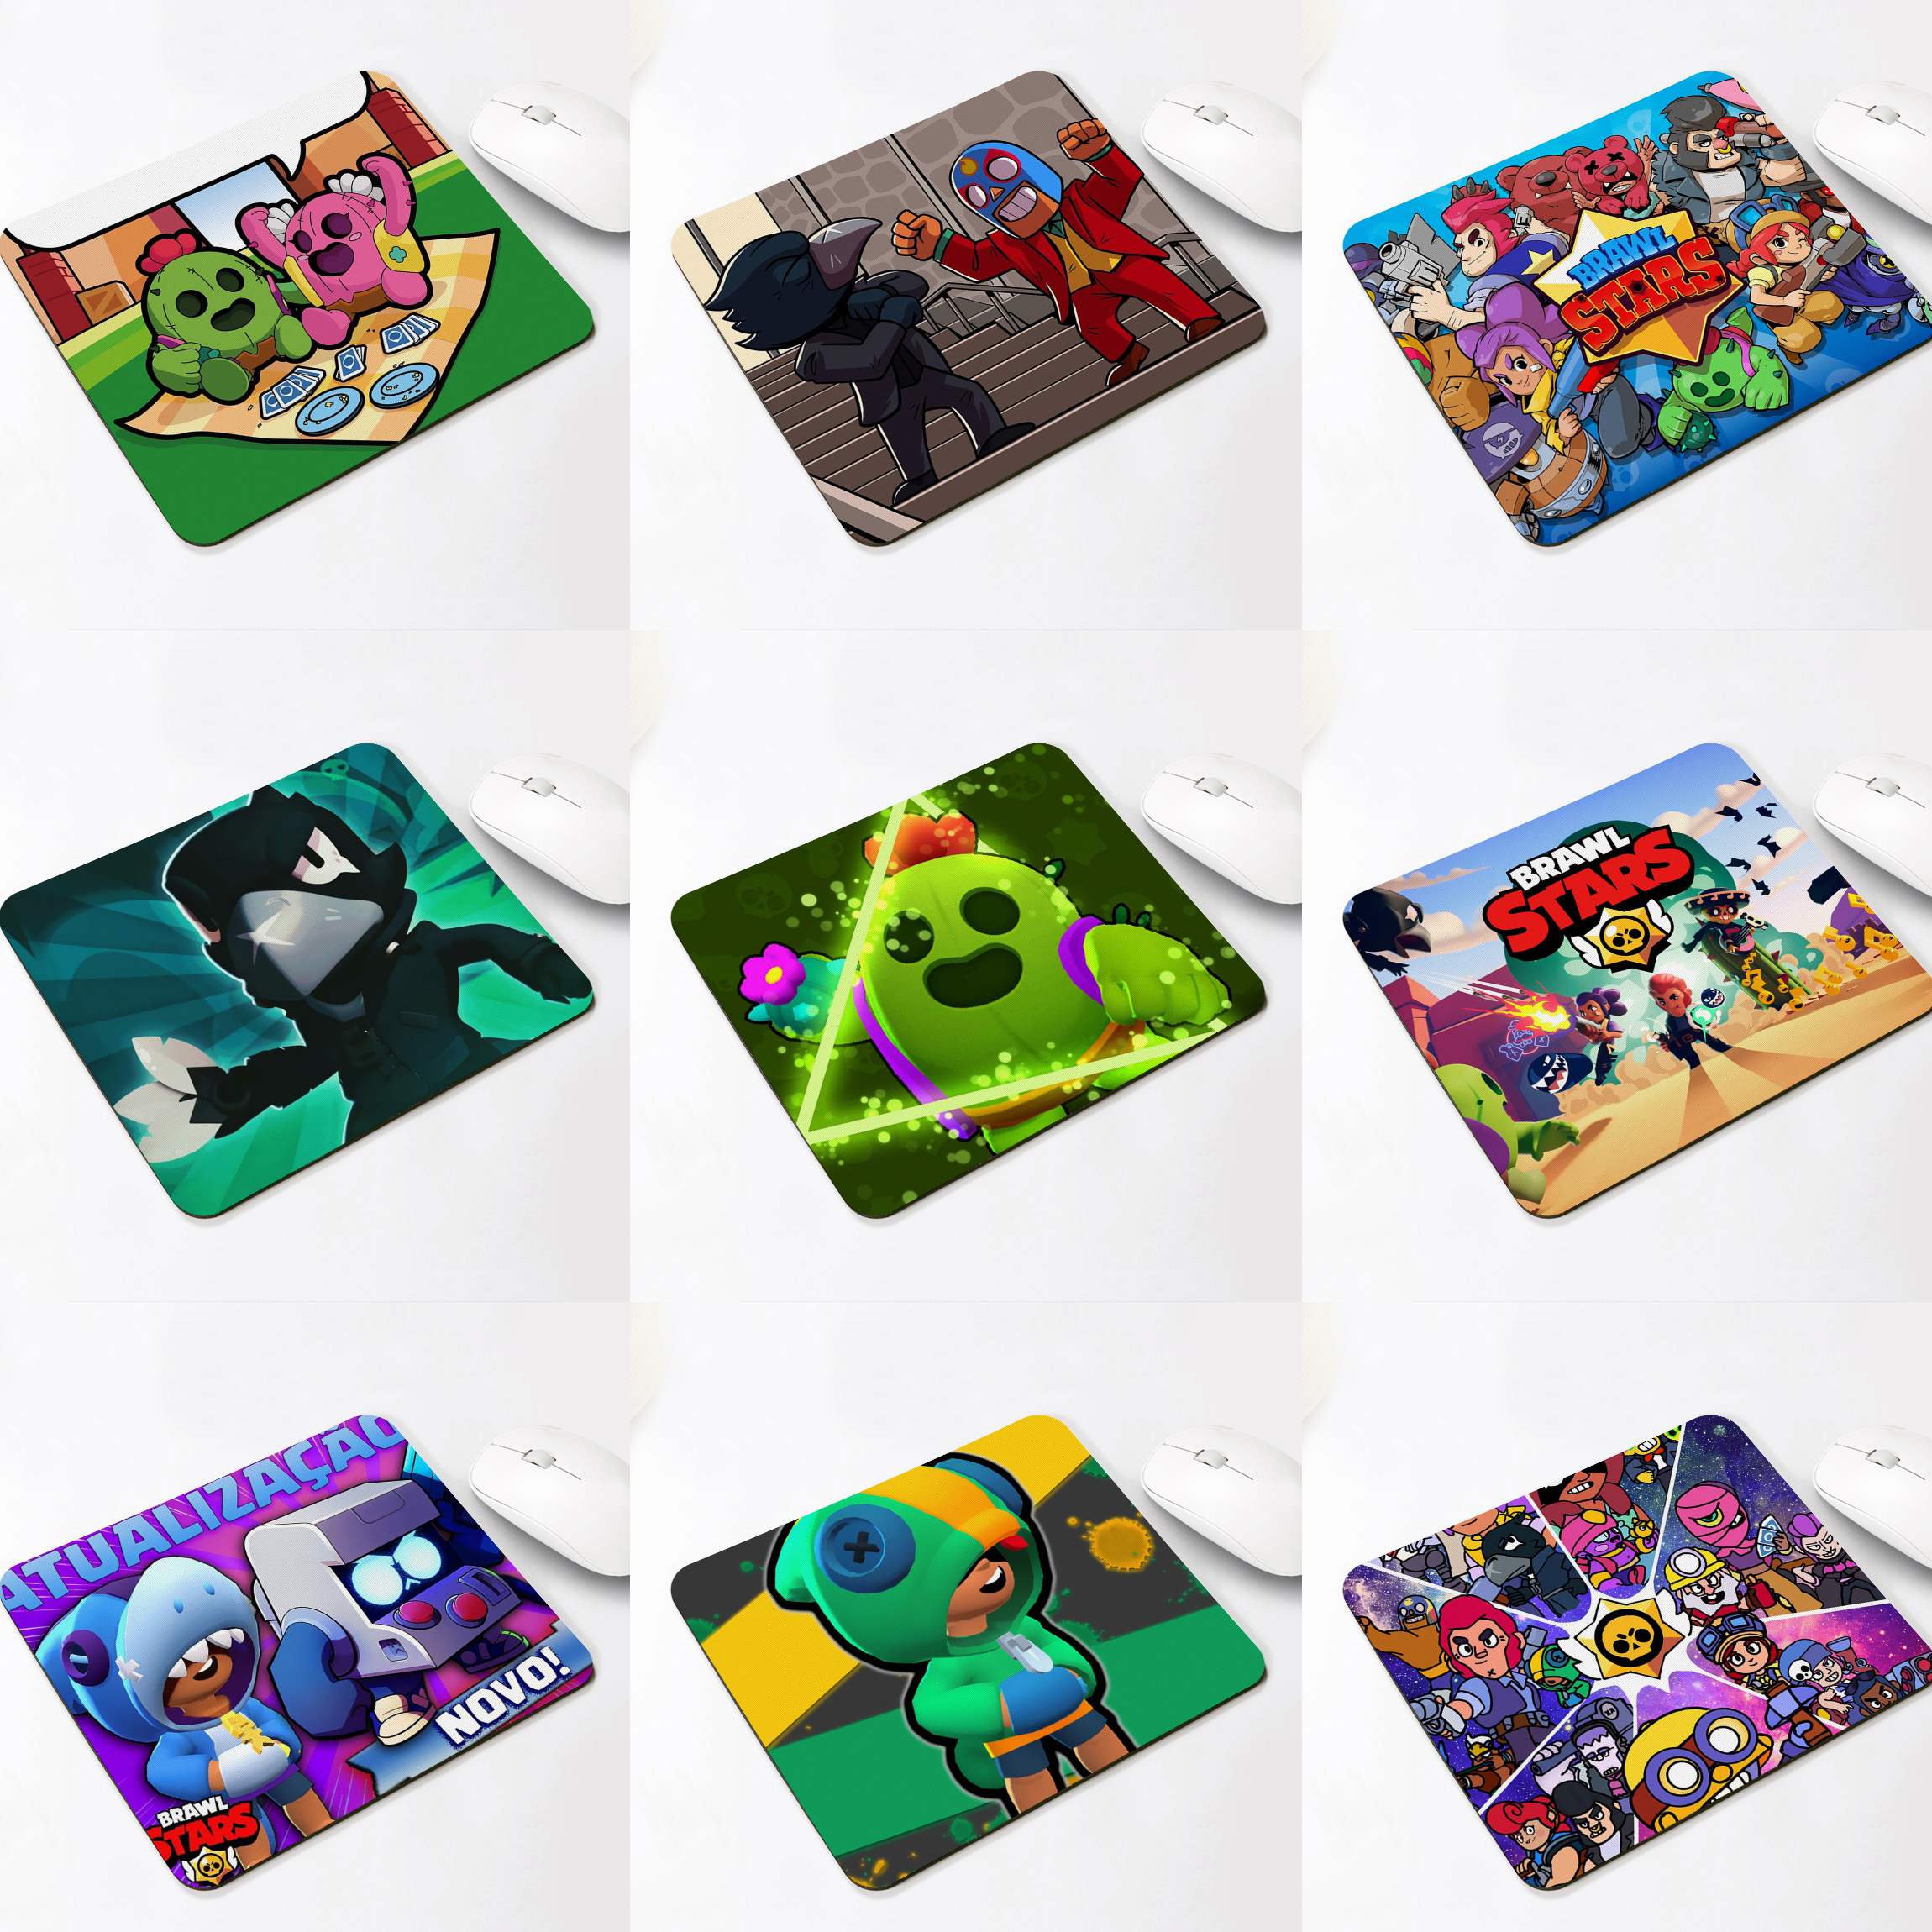 Brawling Game Hero Star Keyboard Mat Desk Mat Spike Shelly Leon Desktop Mousepad Rubber Professional Gaming Mouse Pad Toys